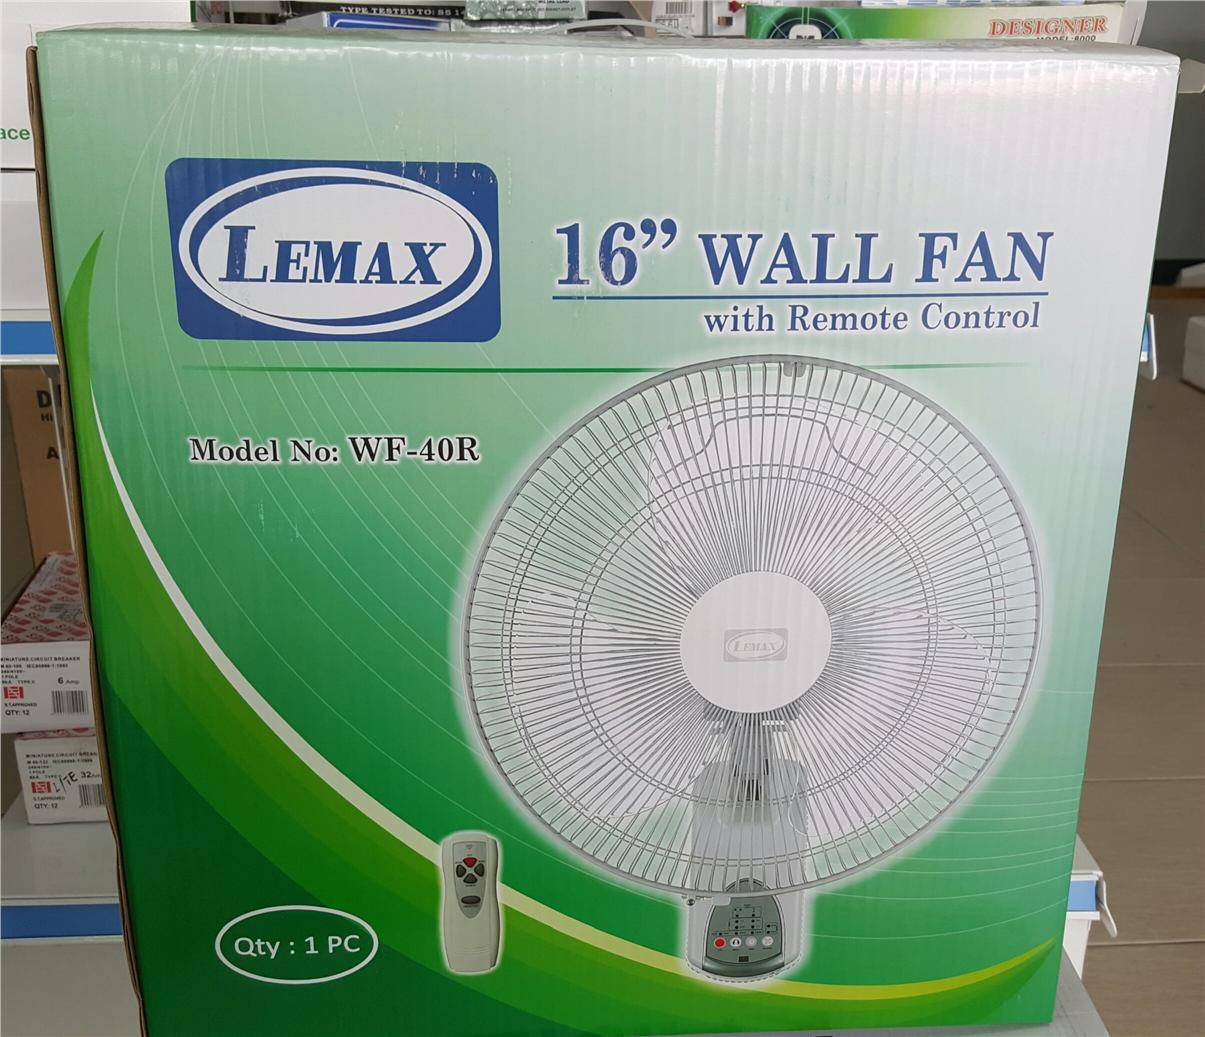 LEMAX 16INCH FIGURE 8 OSCILLATION WALL FAN WITH REMOTE CONTROL